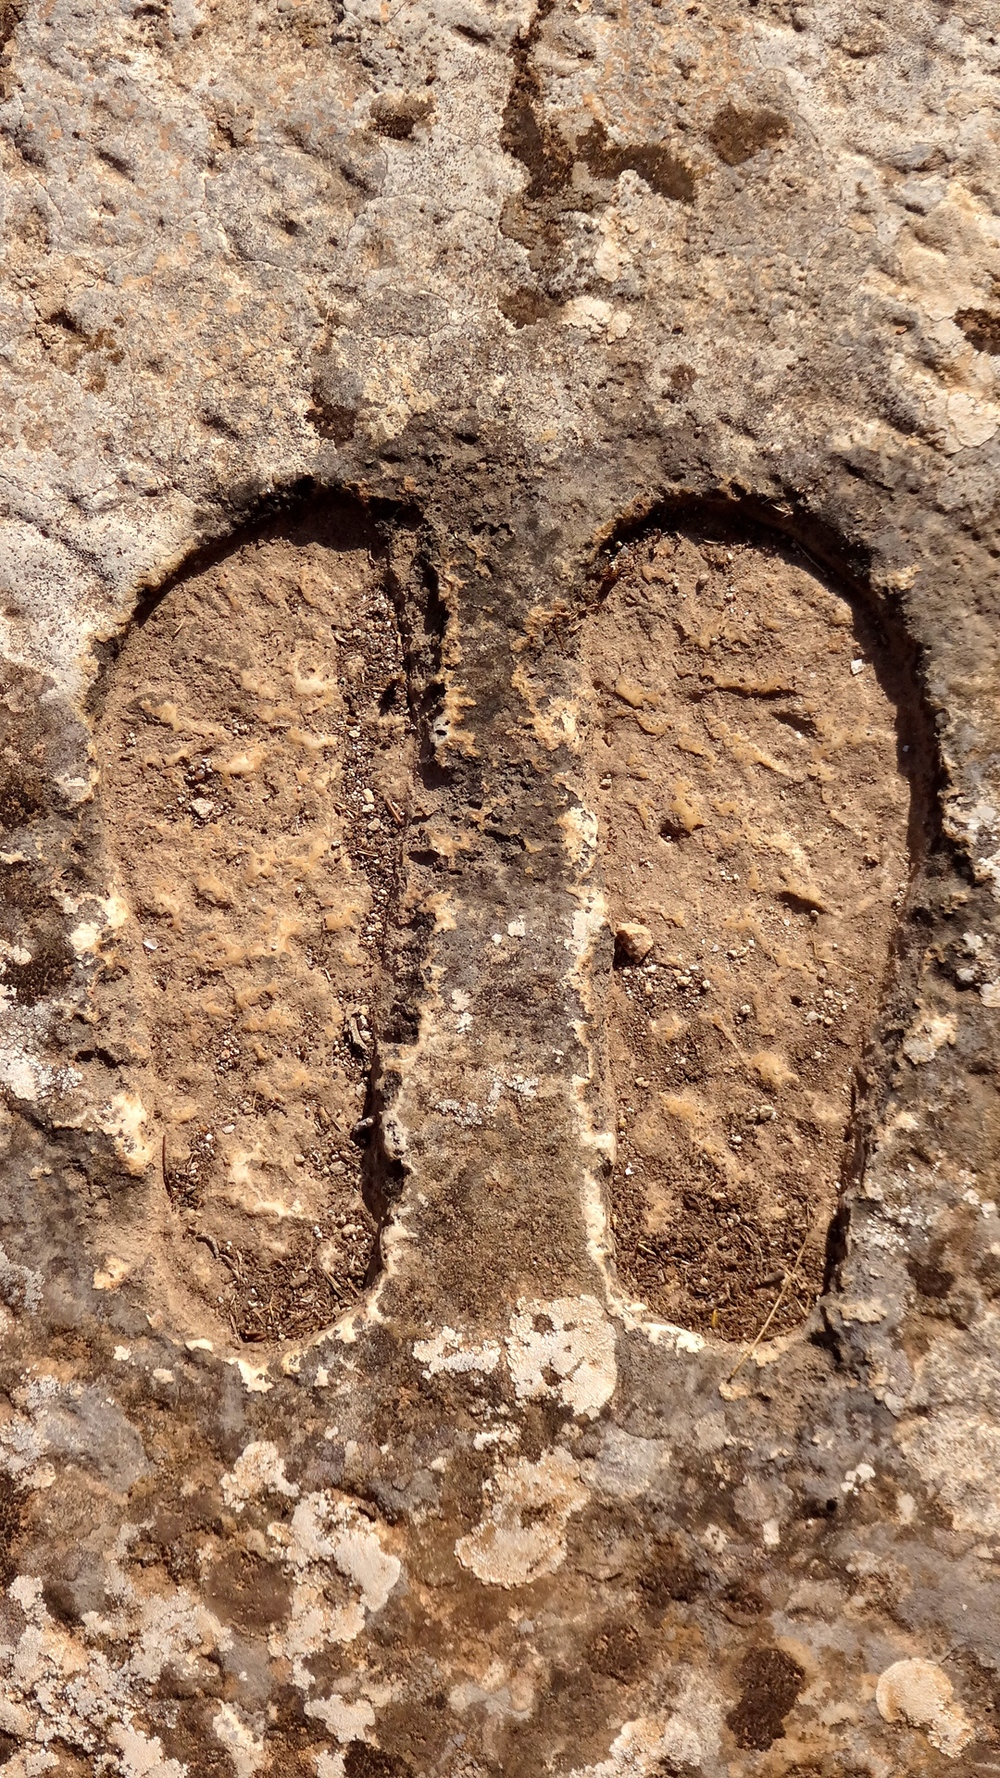 Punic or Roman footprints in the concrete.